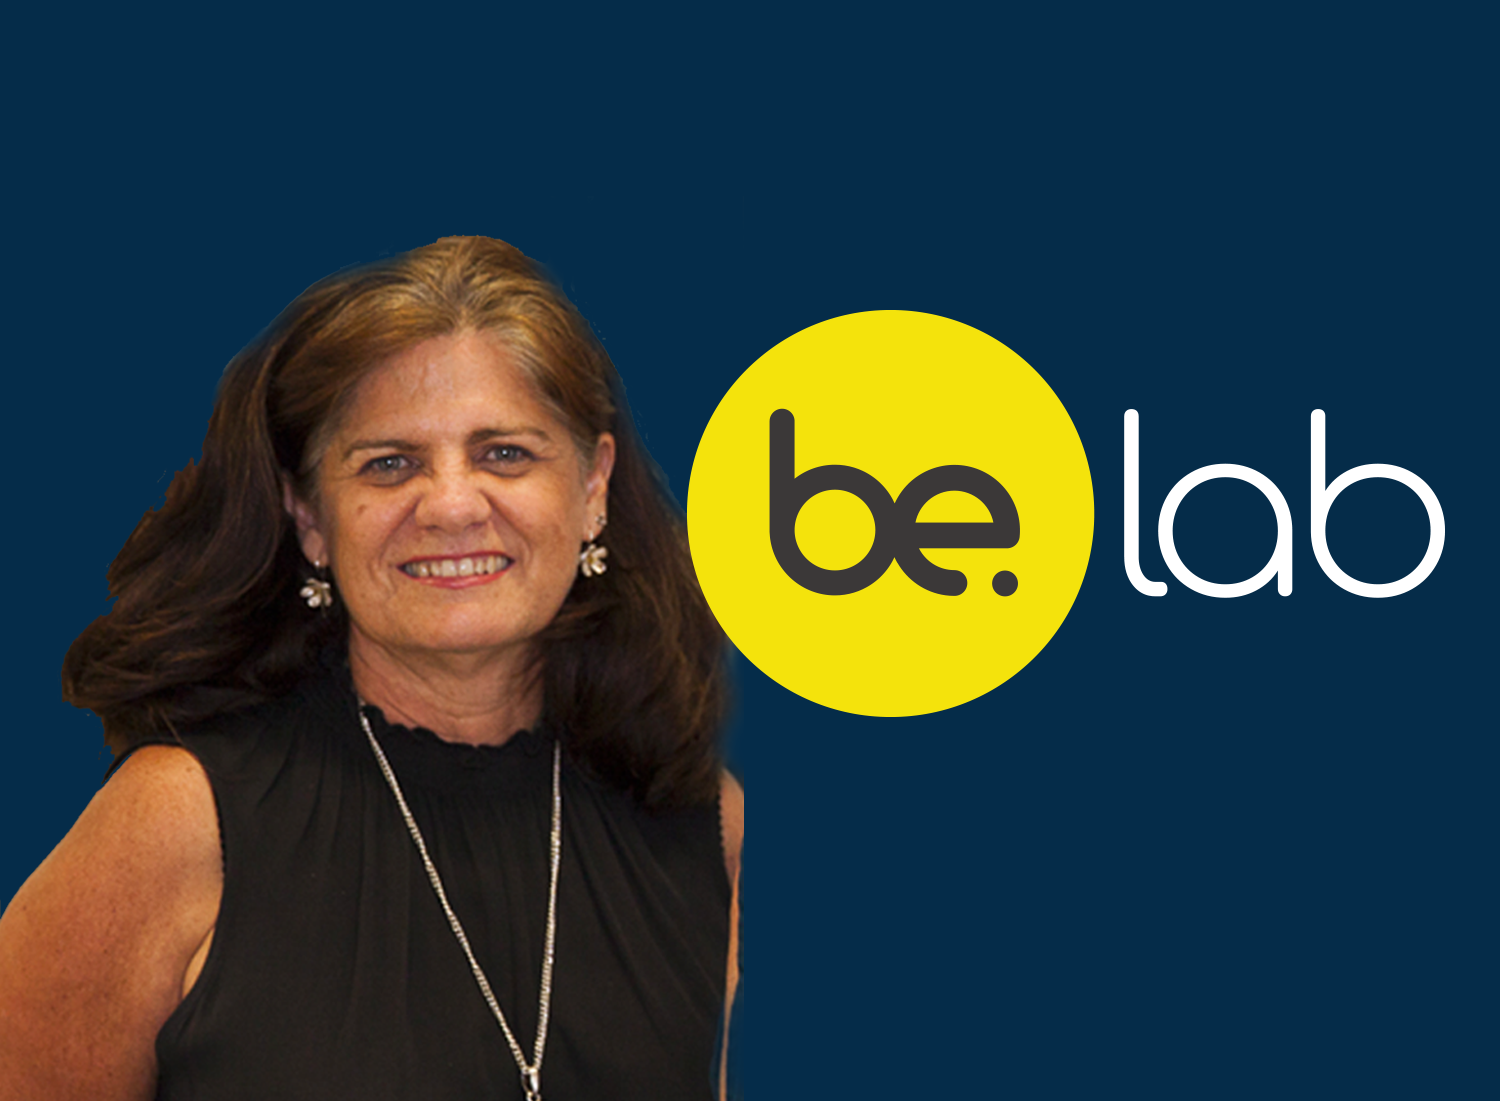 Headshot of Be. Lab CEO, Sue Russell next to the Be. Lab logo on a navy blue background